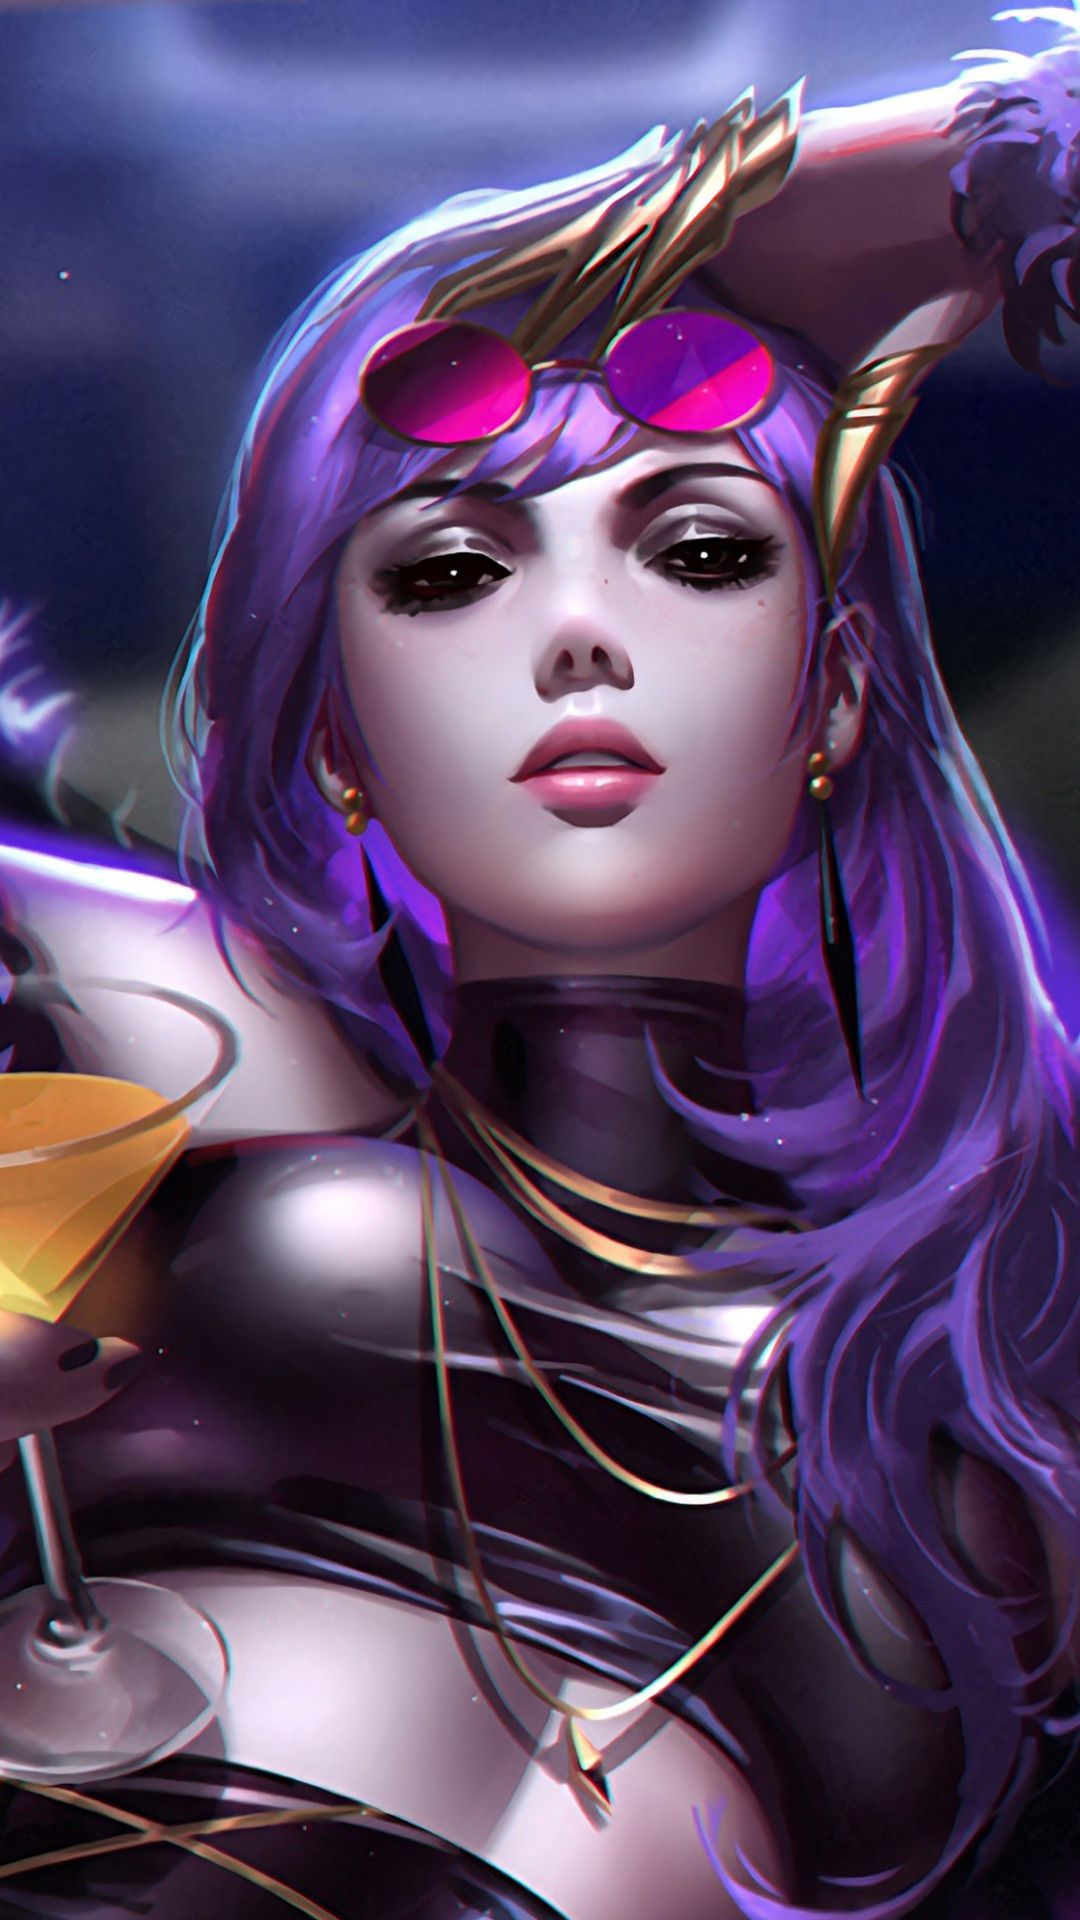 Evelynn Kda League Of Legends By Okuja Lol League Of Legends League Of Legends League Of Legends Characters